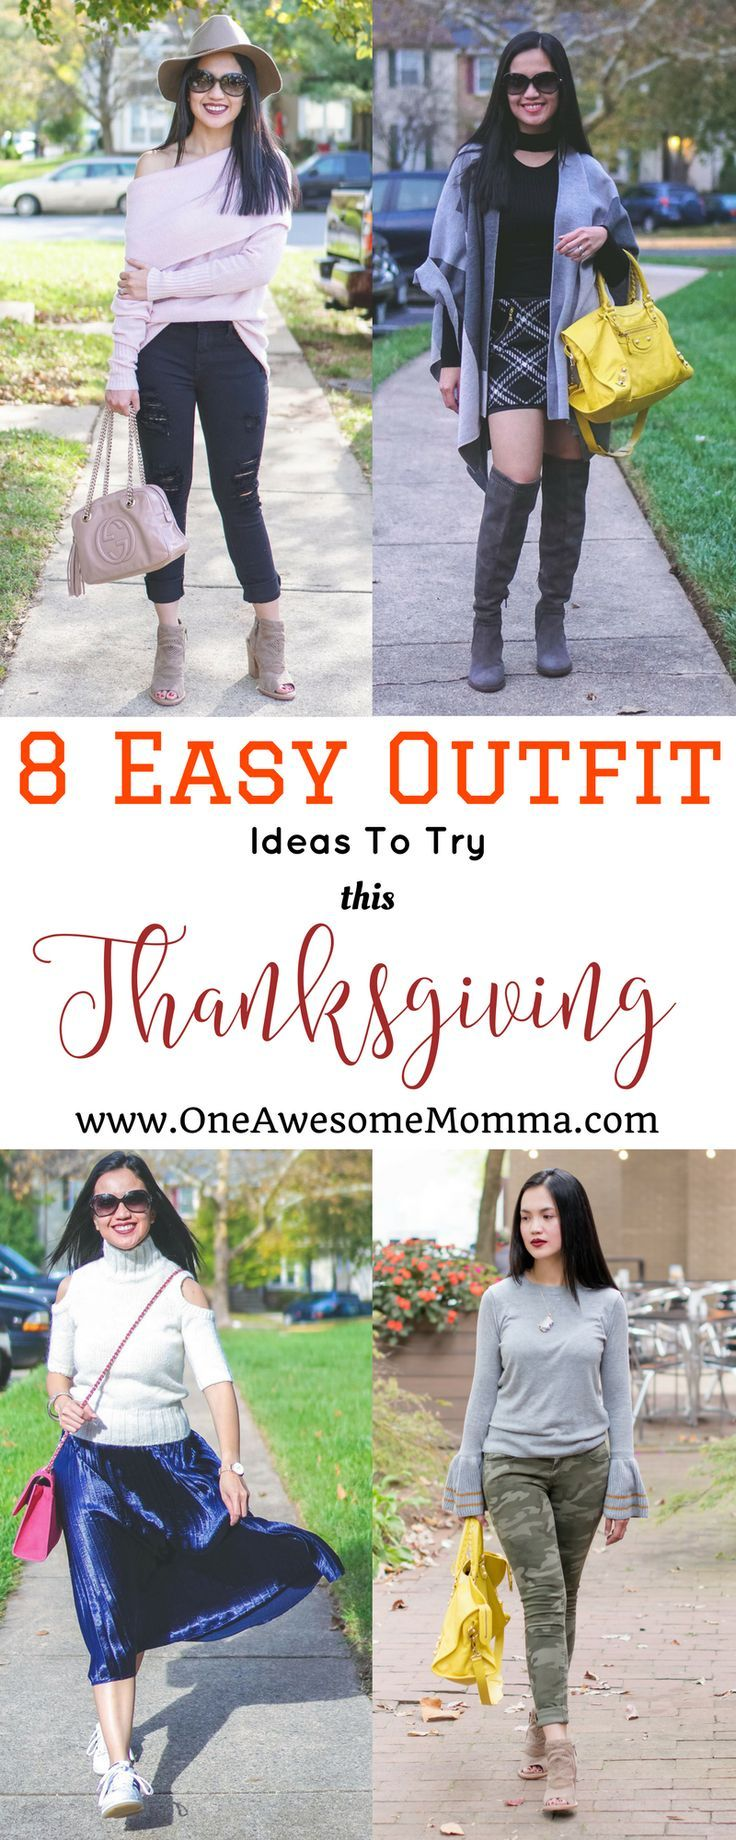 Looking for easy Thanksgiving outfit ideas? Check out this roundup of easy and cute Thanksgiving outfit ideas featuring over the knee boots, leather leggings, fur vests, cold shoulder sweater, distressed jeans, bell sleeves, camo pants, pleated skirt, poncho, and floppy hats. #thanksgivingoutfits thanksgivingoutfitideas #momstyle #momfashion #fallstyle #fallfashion | thanksgiving outfit | thanksgiving outfits for women | thanksgiving style | thanksgiving fashion